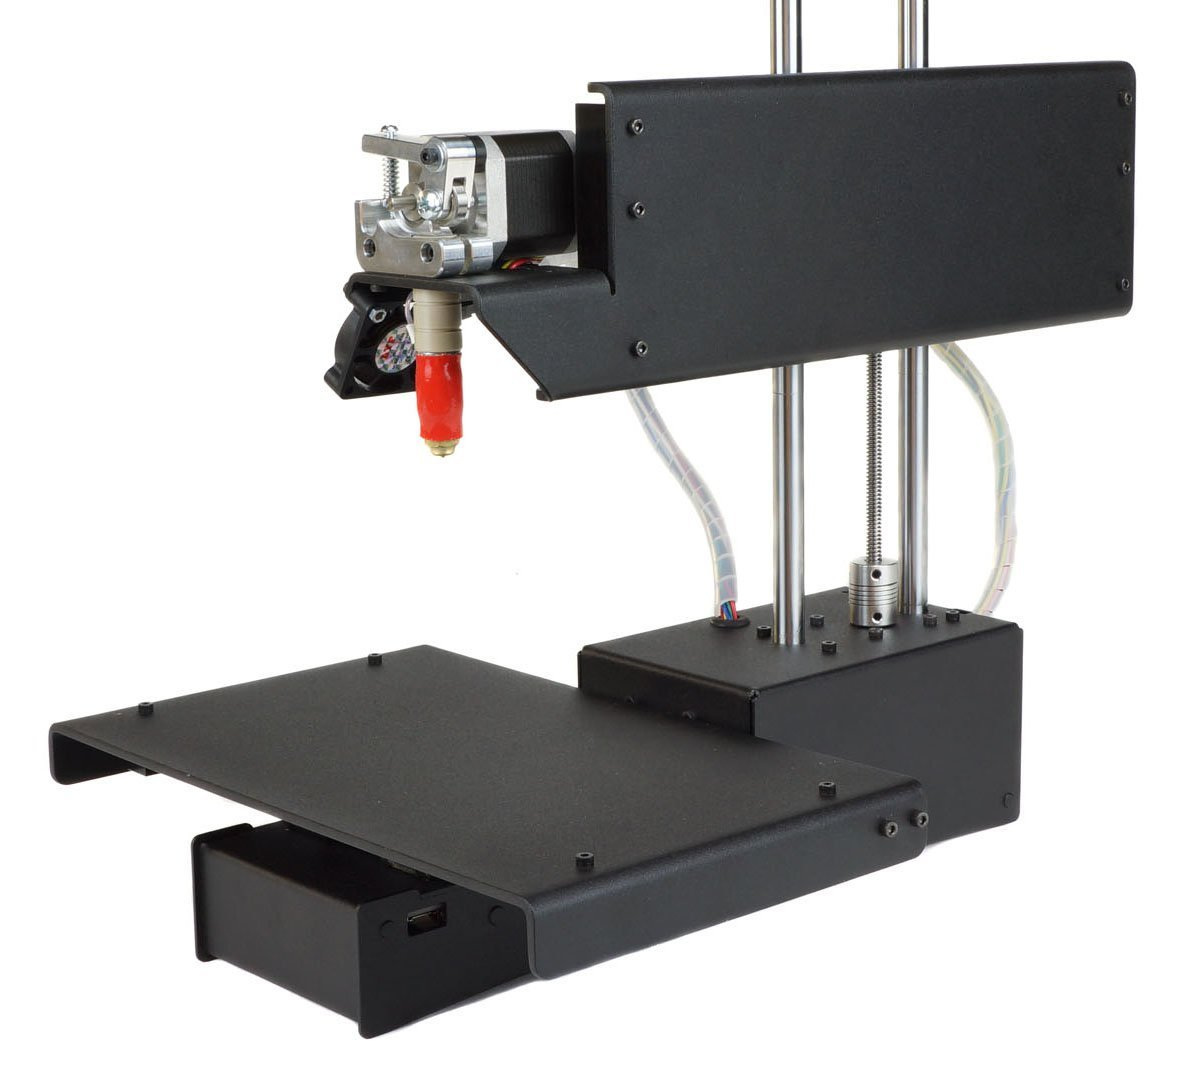 3D Printer Review: Printrbot Simple Metal cheap desktop kit